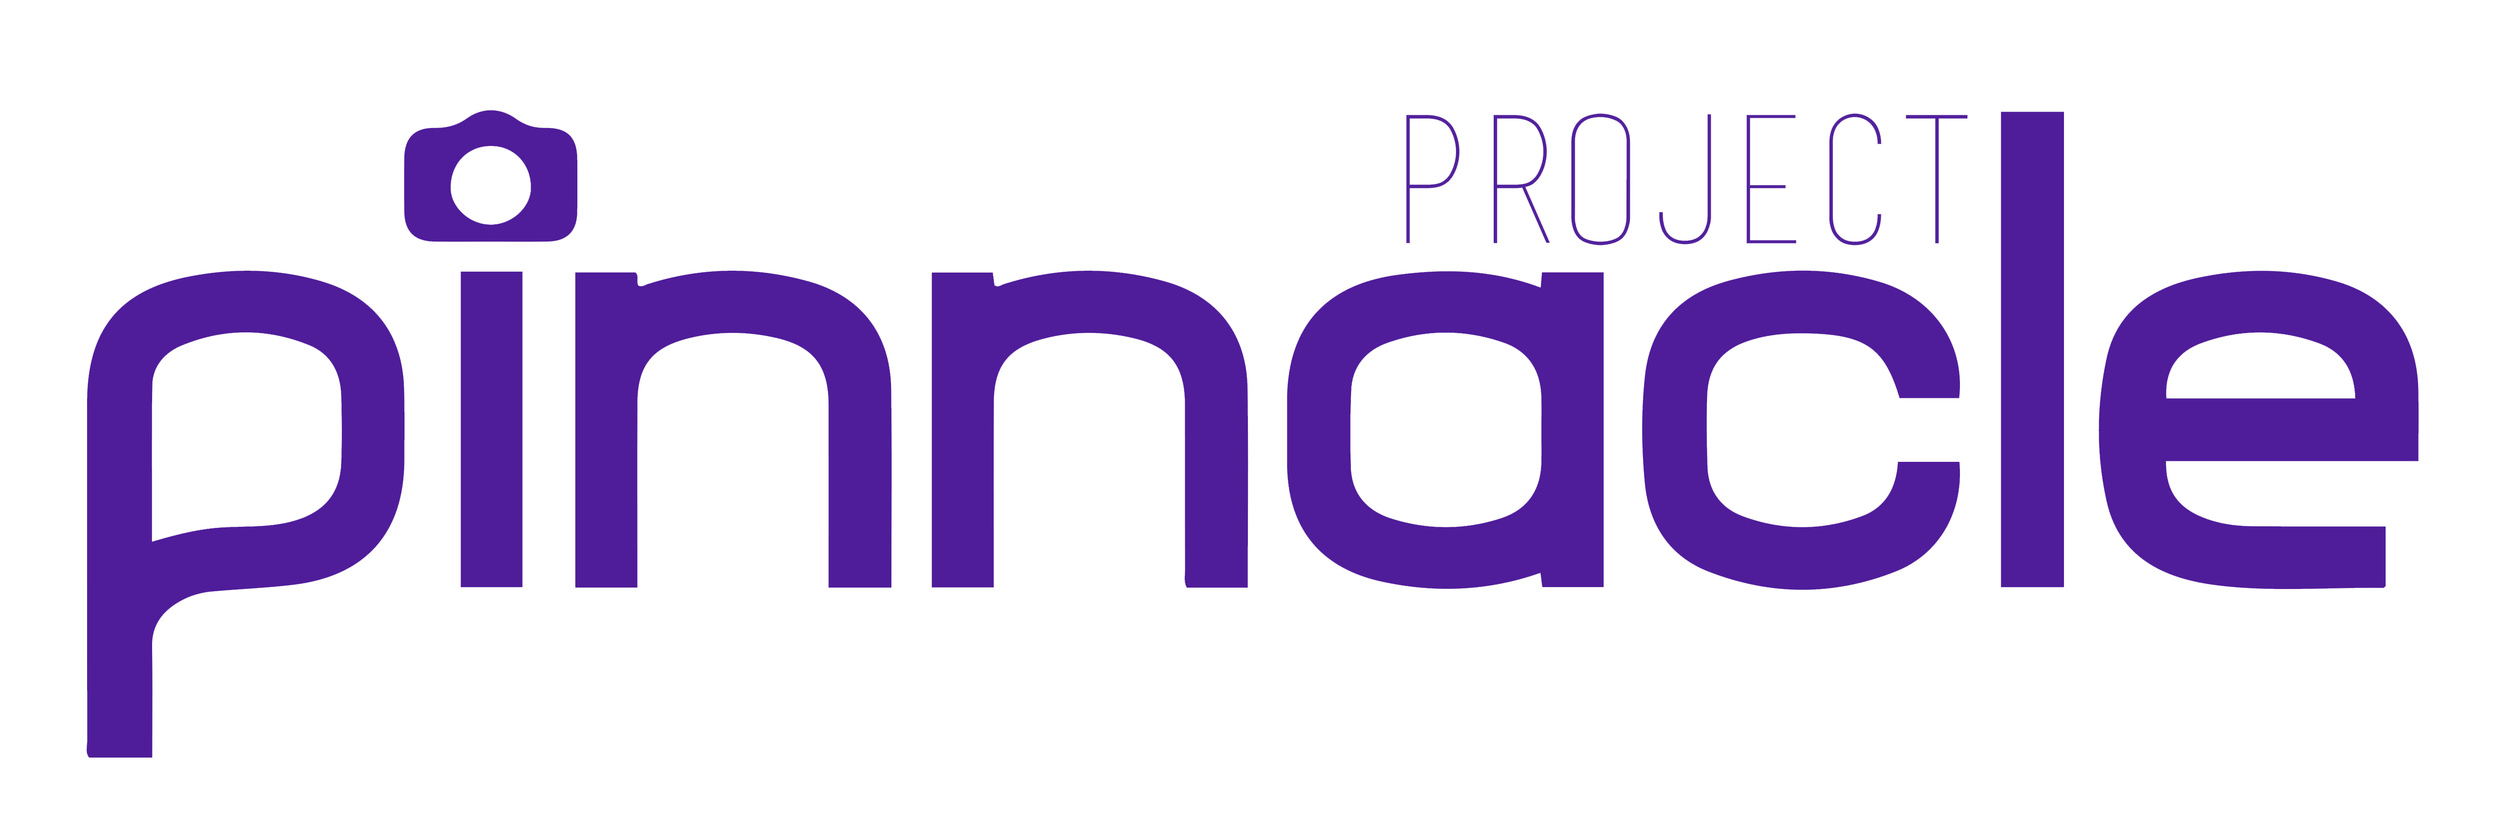 Logo Design for Project Pinnacle, part of SCAPE Accelerator